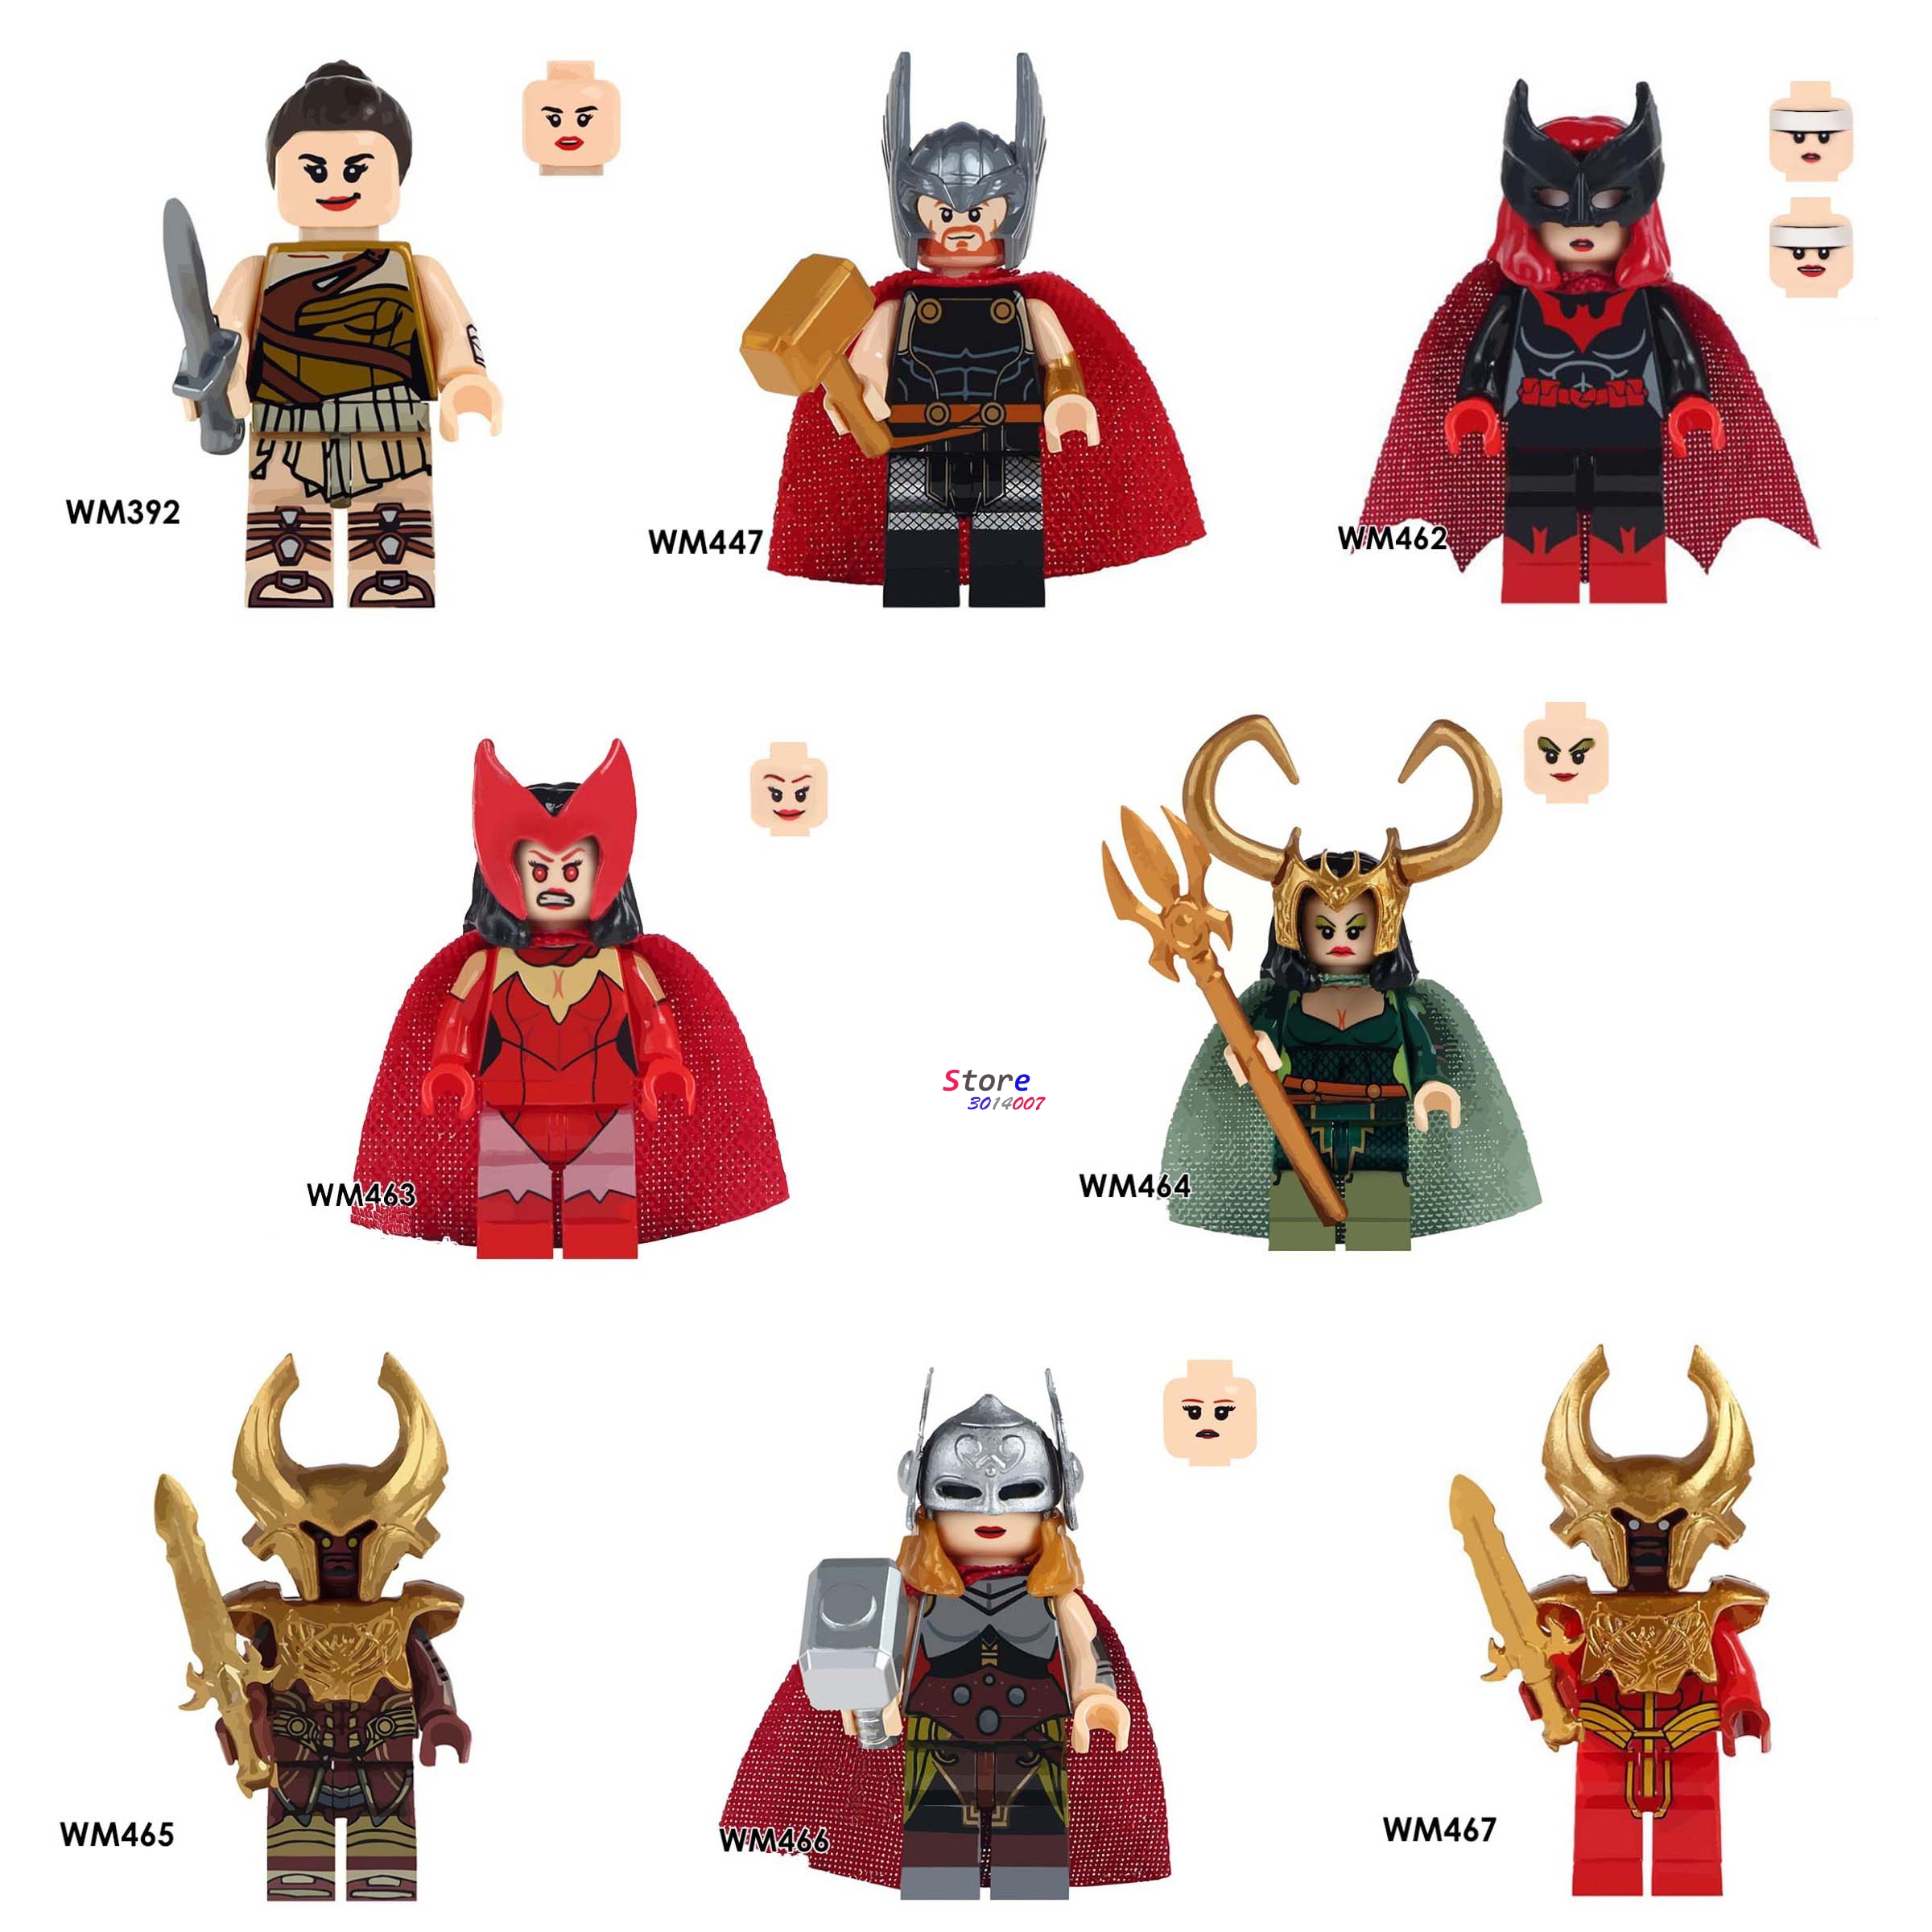 Single marvel Avengers Wonder Woman Figures Heimdallr Thor Lady Loki Knight Batman Scarlet Witch building block toy for children